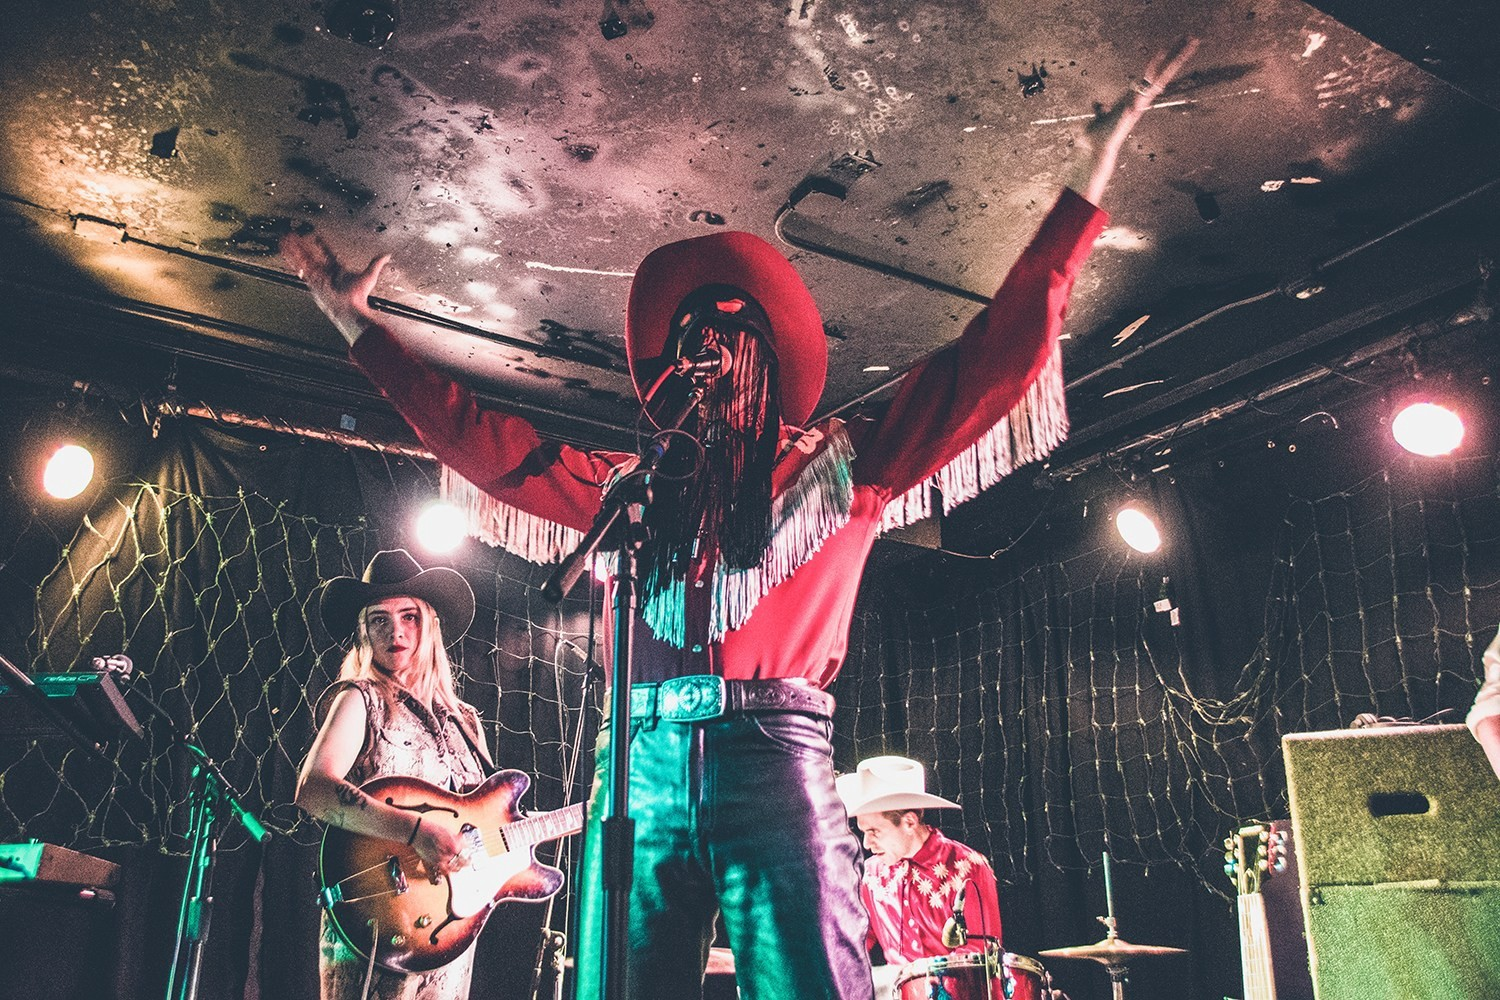 Orville Peck in a red, fringed western costume raises his hand at a live concert.